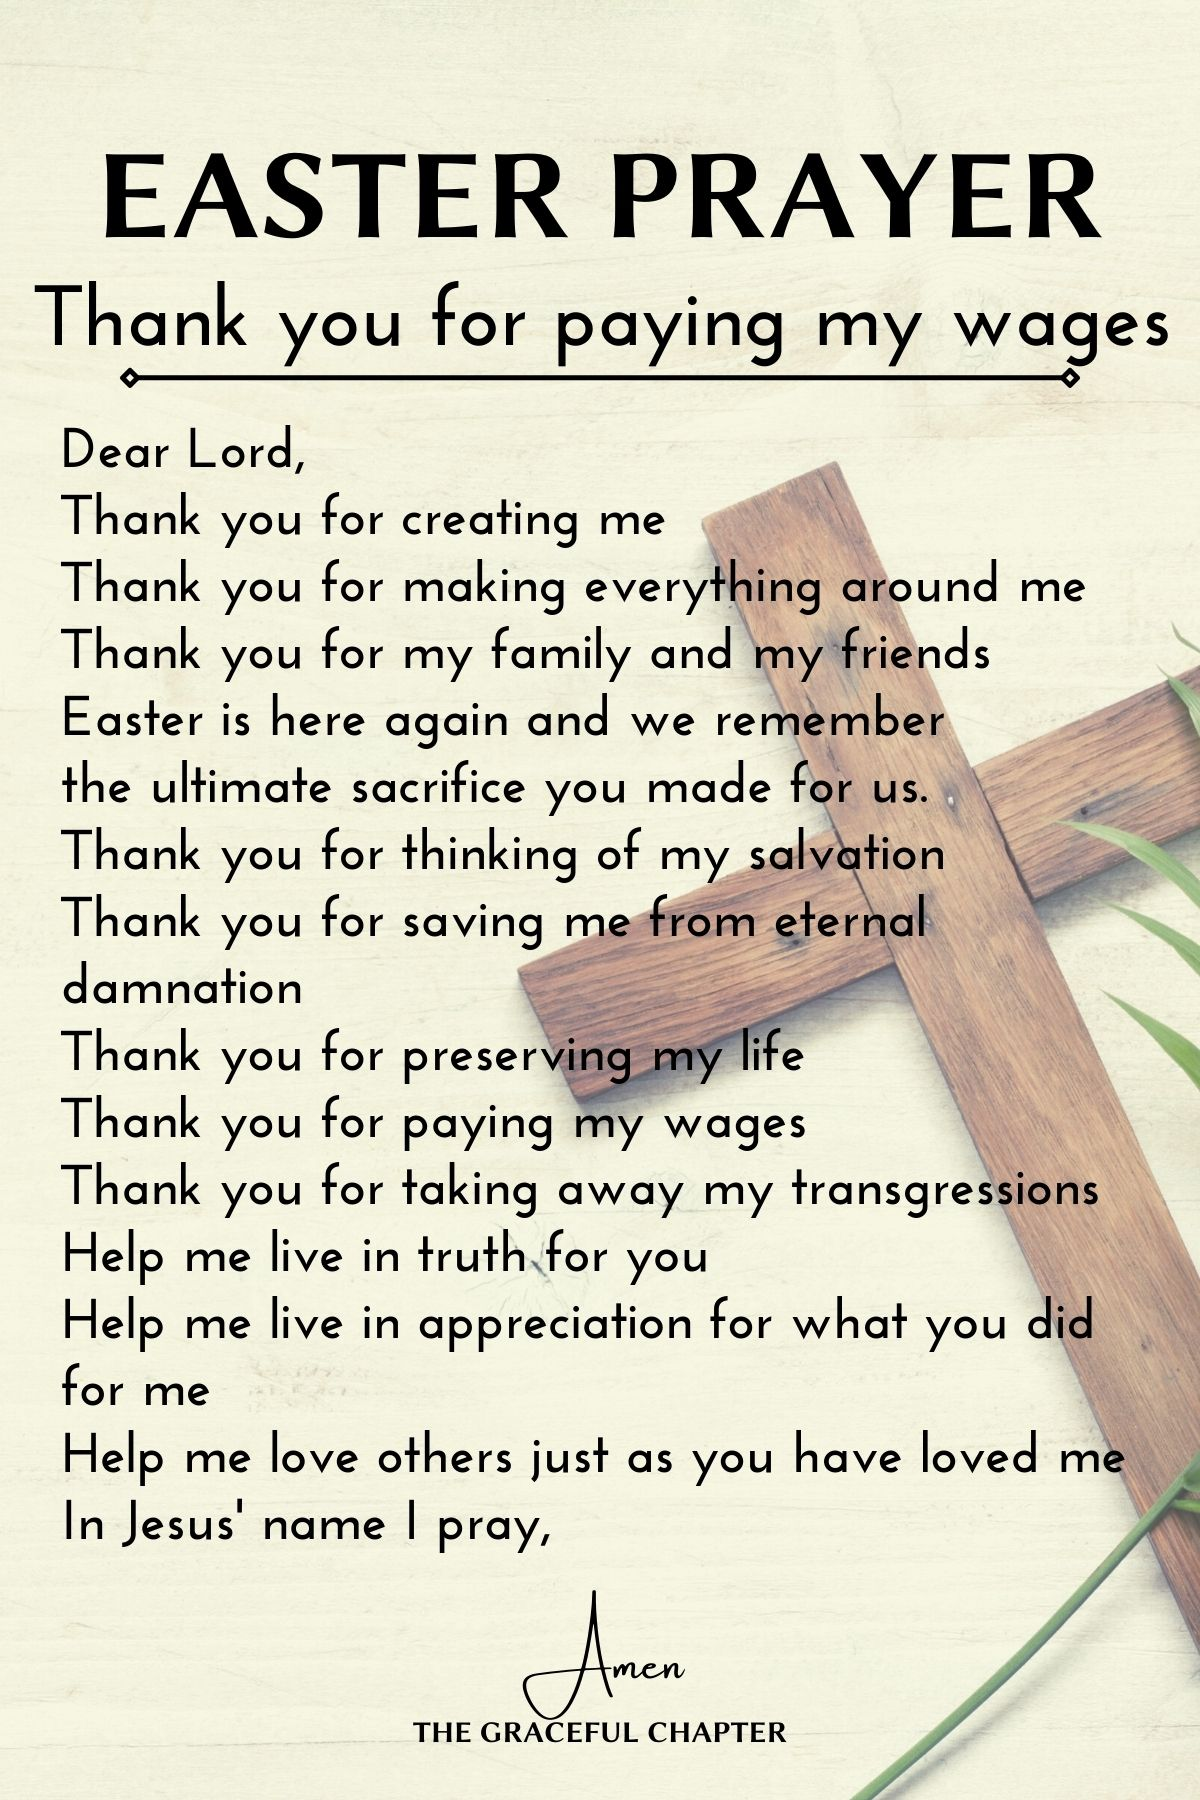 thank you for paying my wages - easter prayer